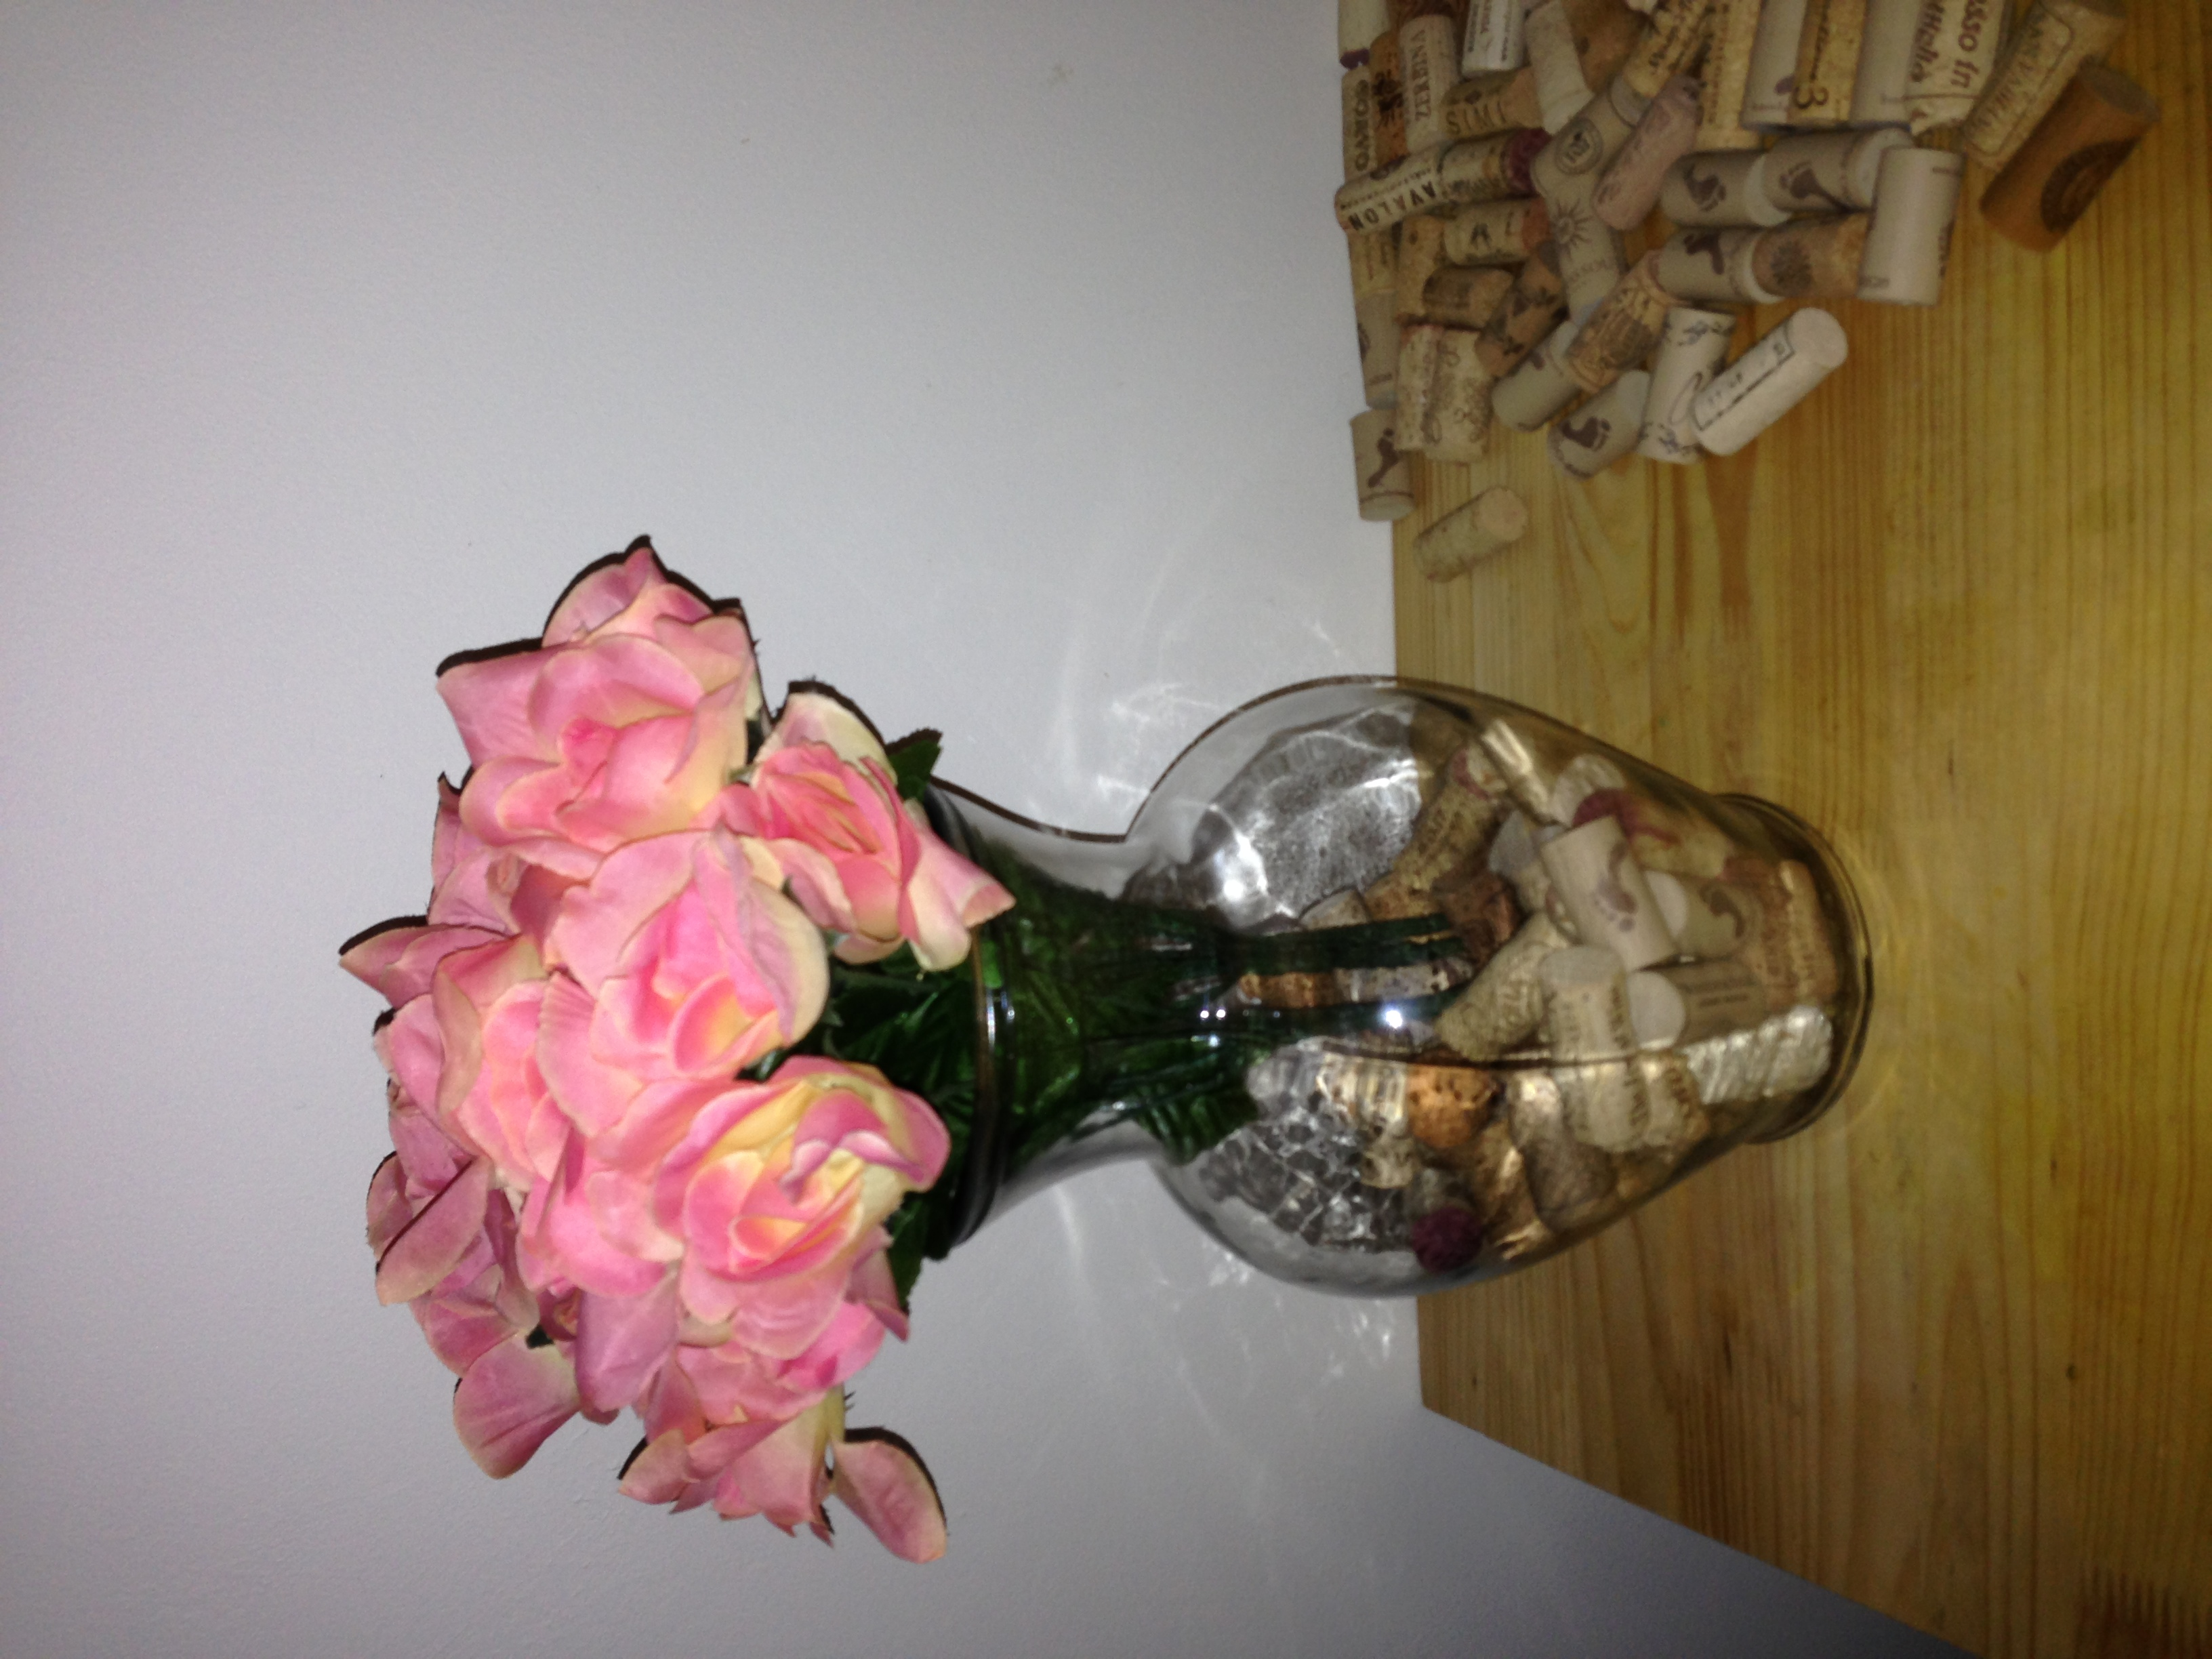 Diy wine cork vase decor eat teach laugh craft wine cork vase half full reviewsmspy